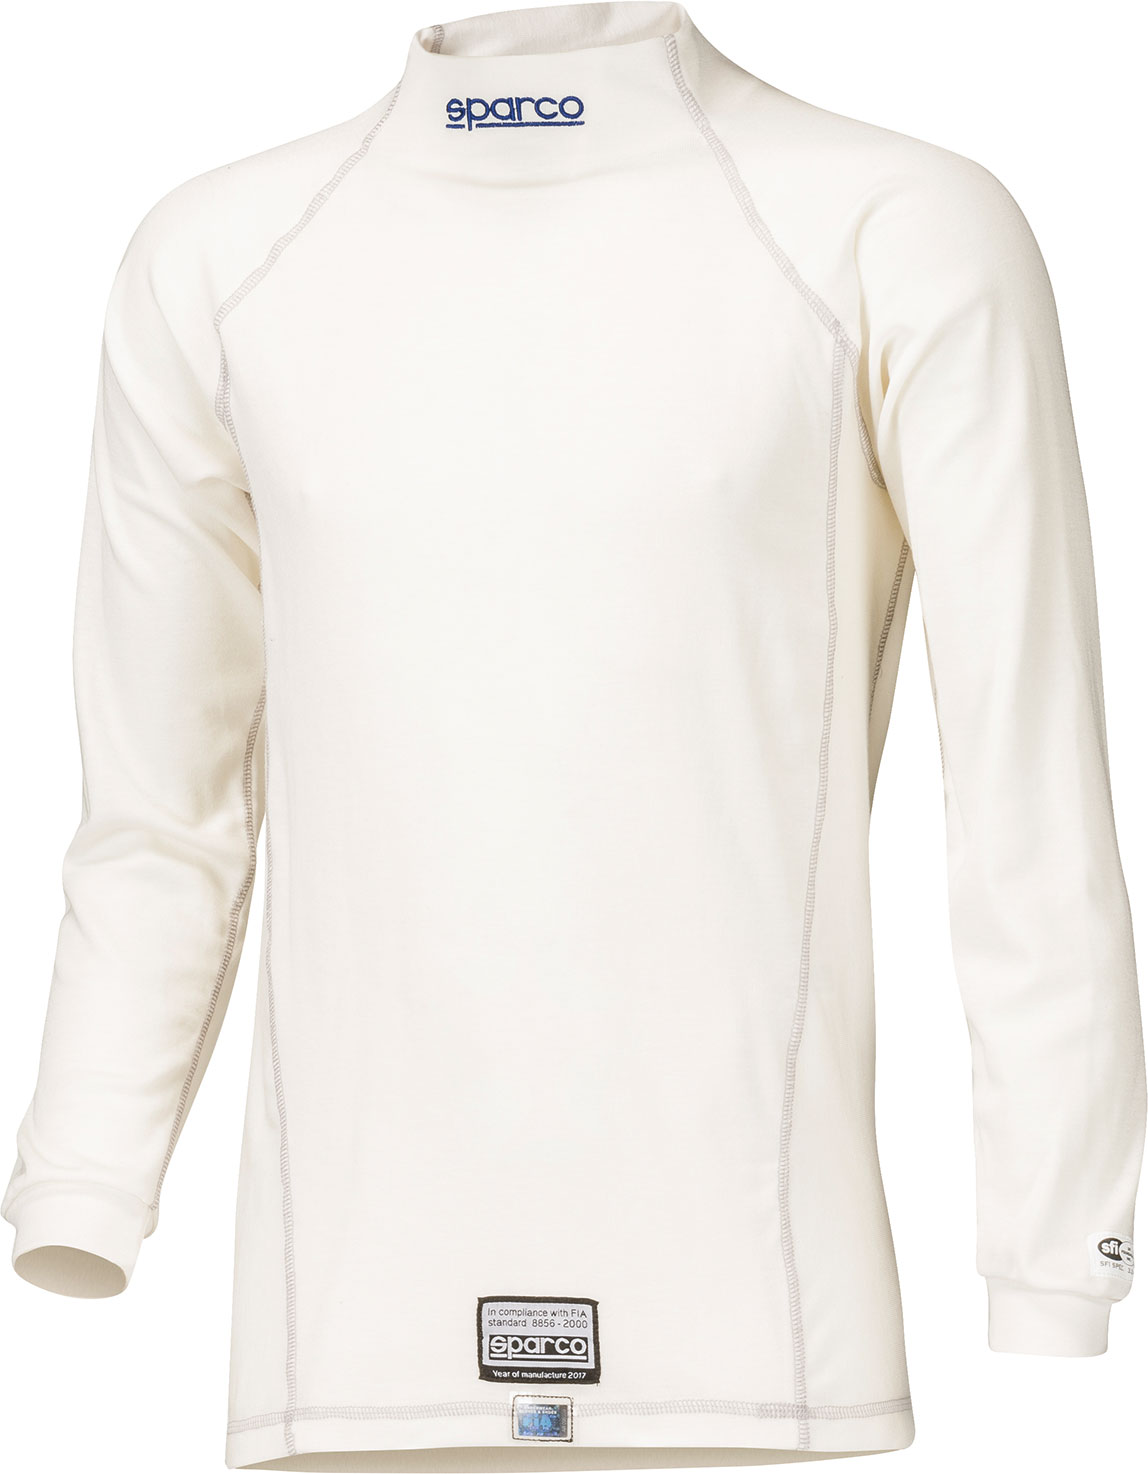 Sparco Pullover Guard RW-3